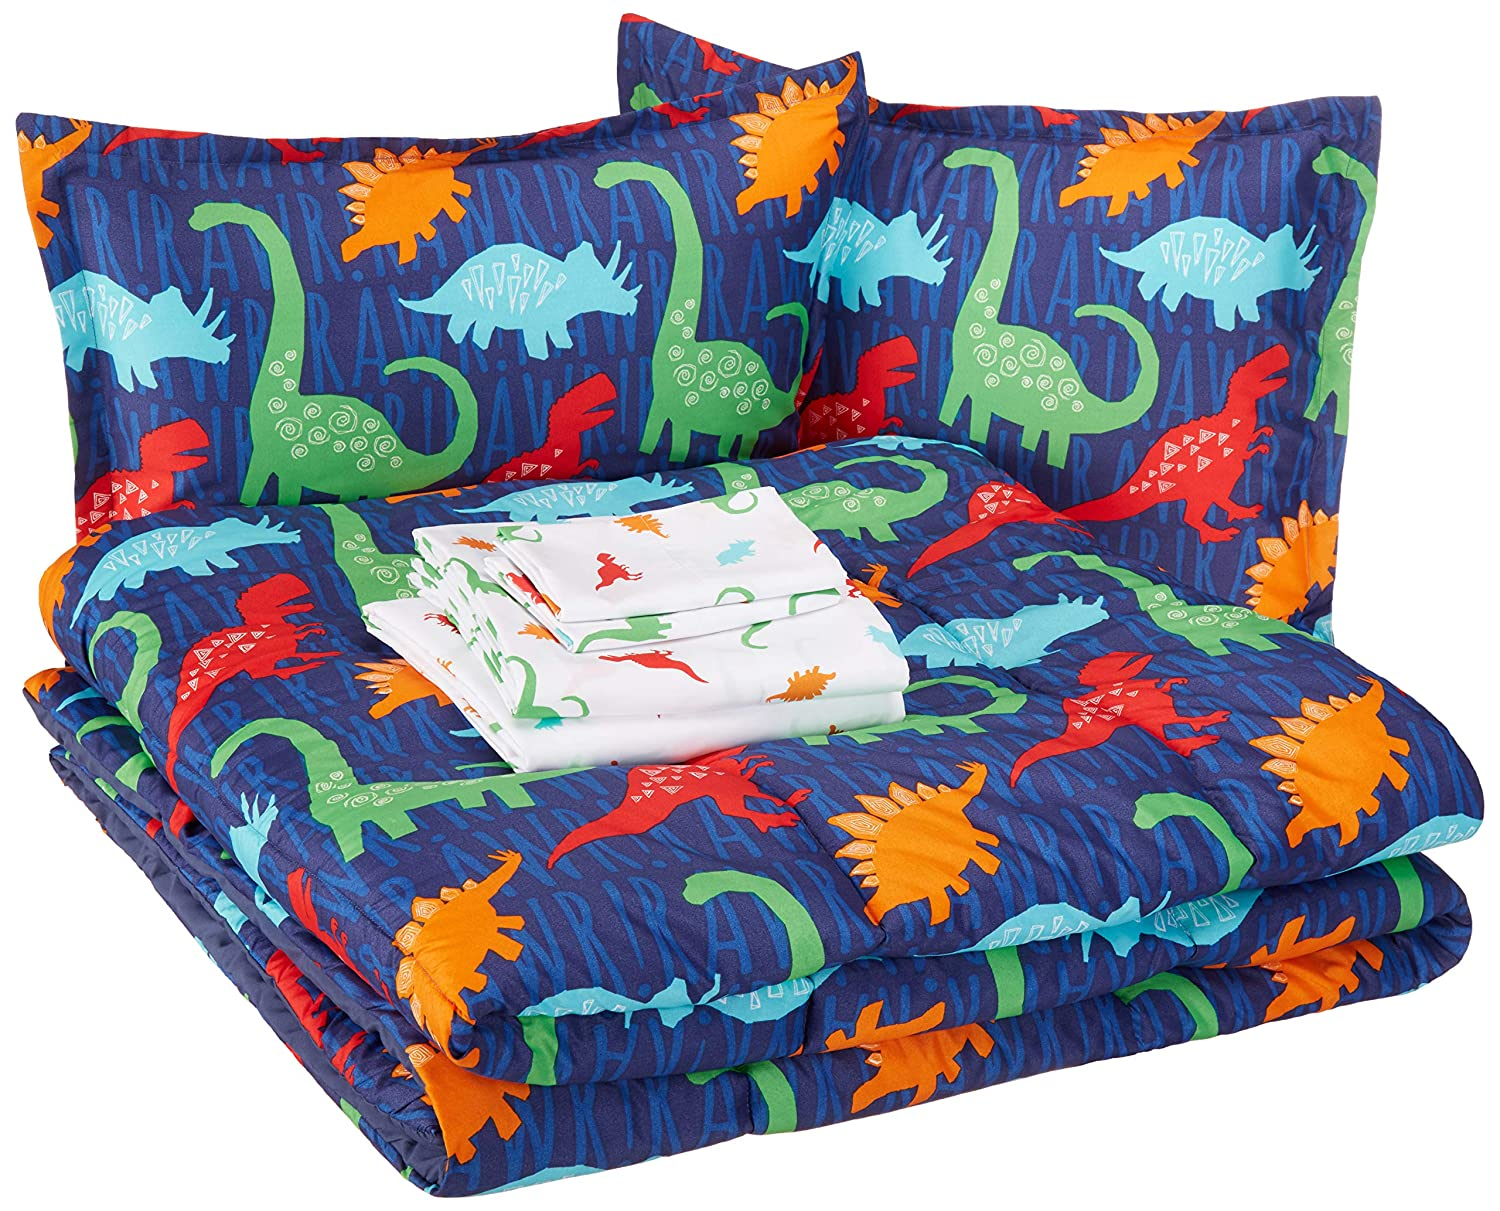 AmazonBasics Kid's Bed-in-a-Bag - Soft, Easy-Wash Microfiber - Full/Queen, Multi-Color Dinosaurs